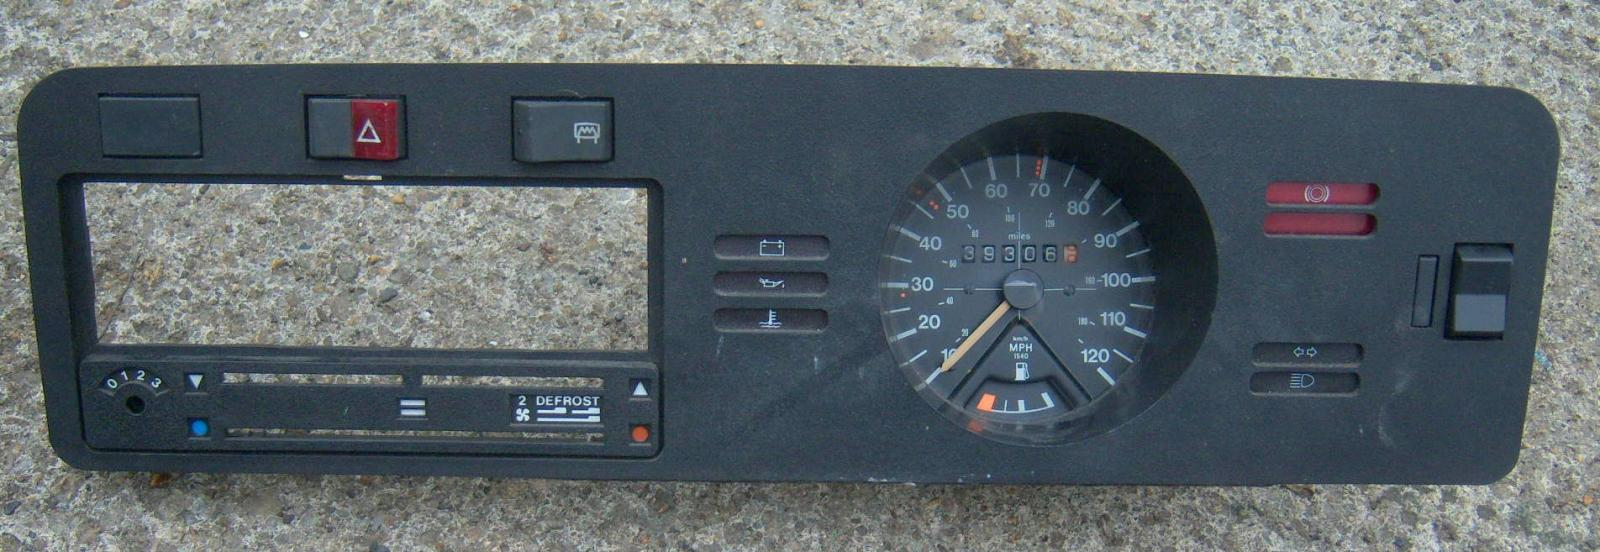 Mk1, Series 1, 1977, Right Hand Drive, Complete Dashboard